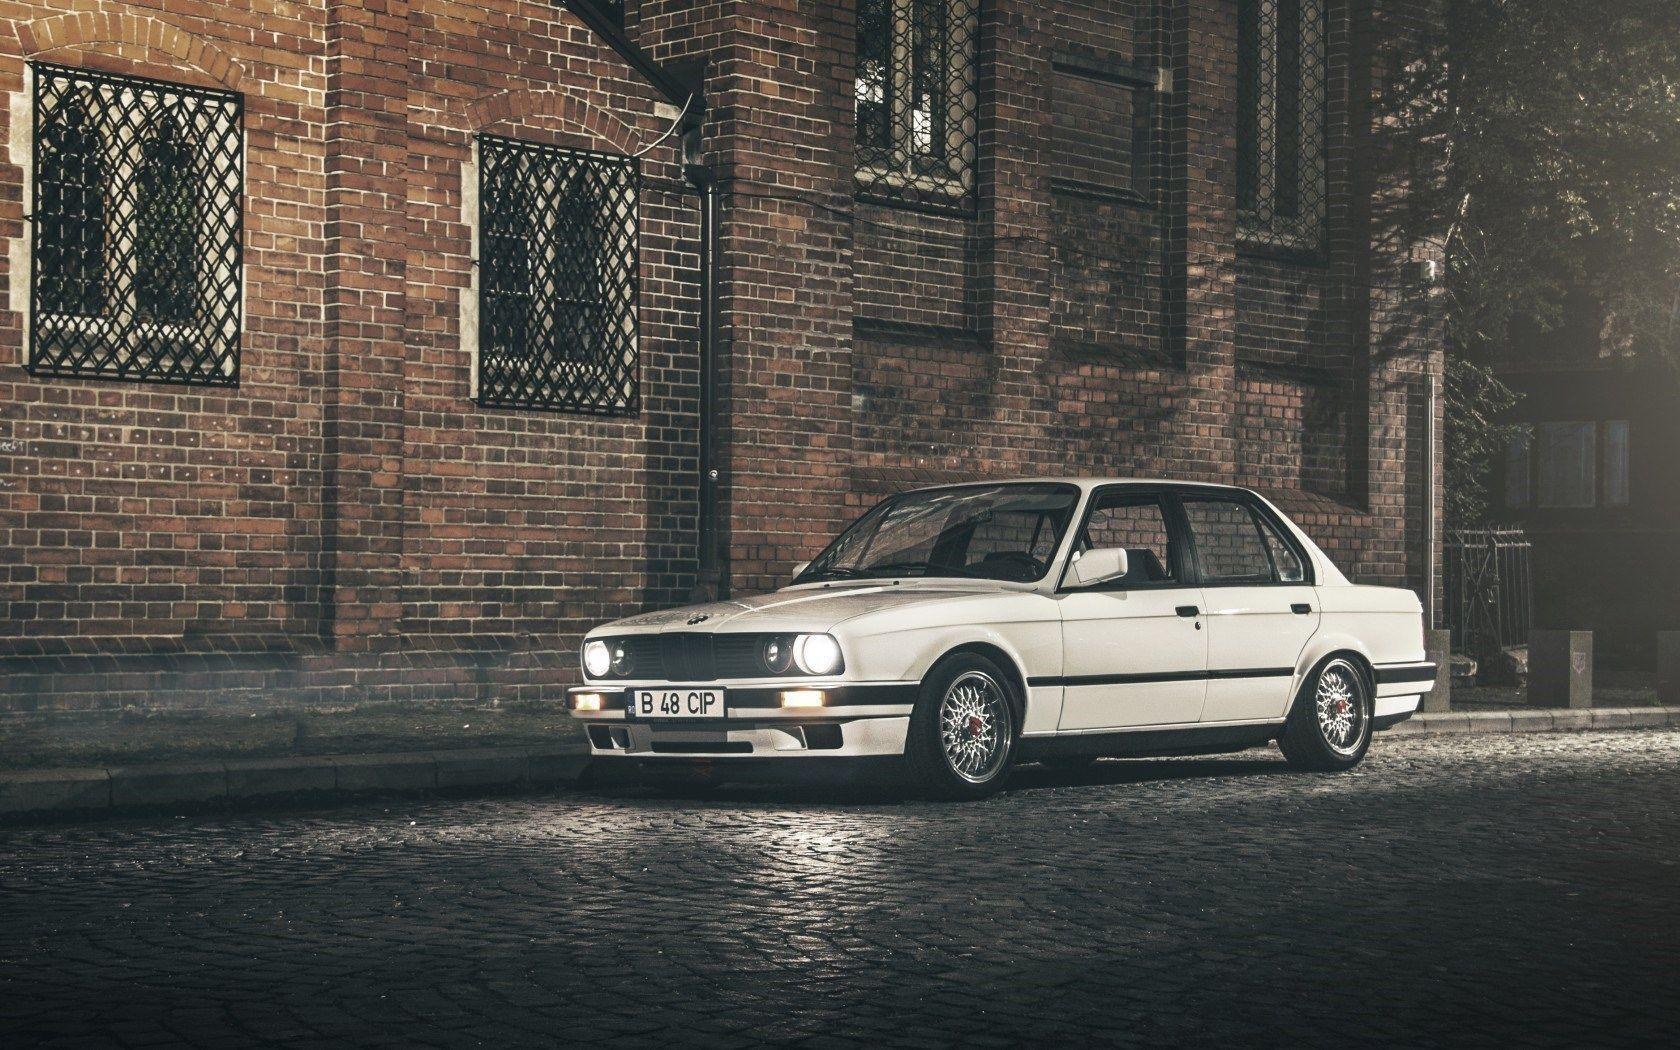 BMW E30 Wallpapers 1680x1050